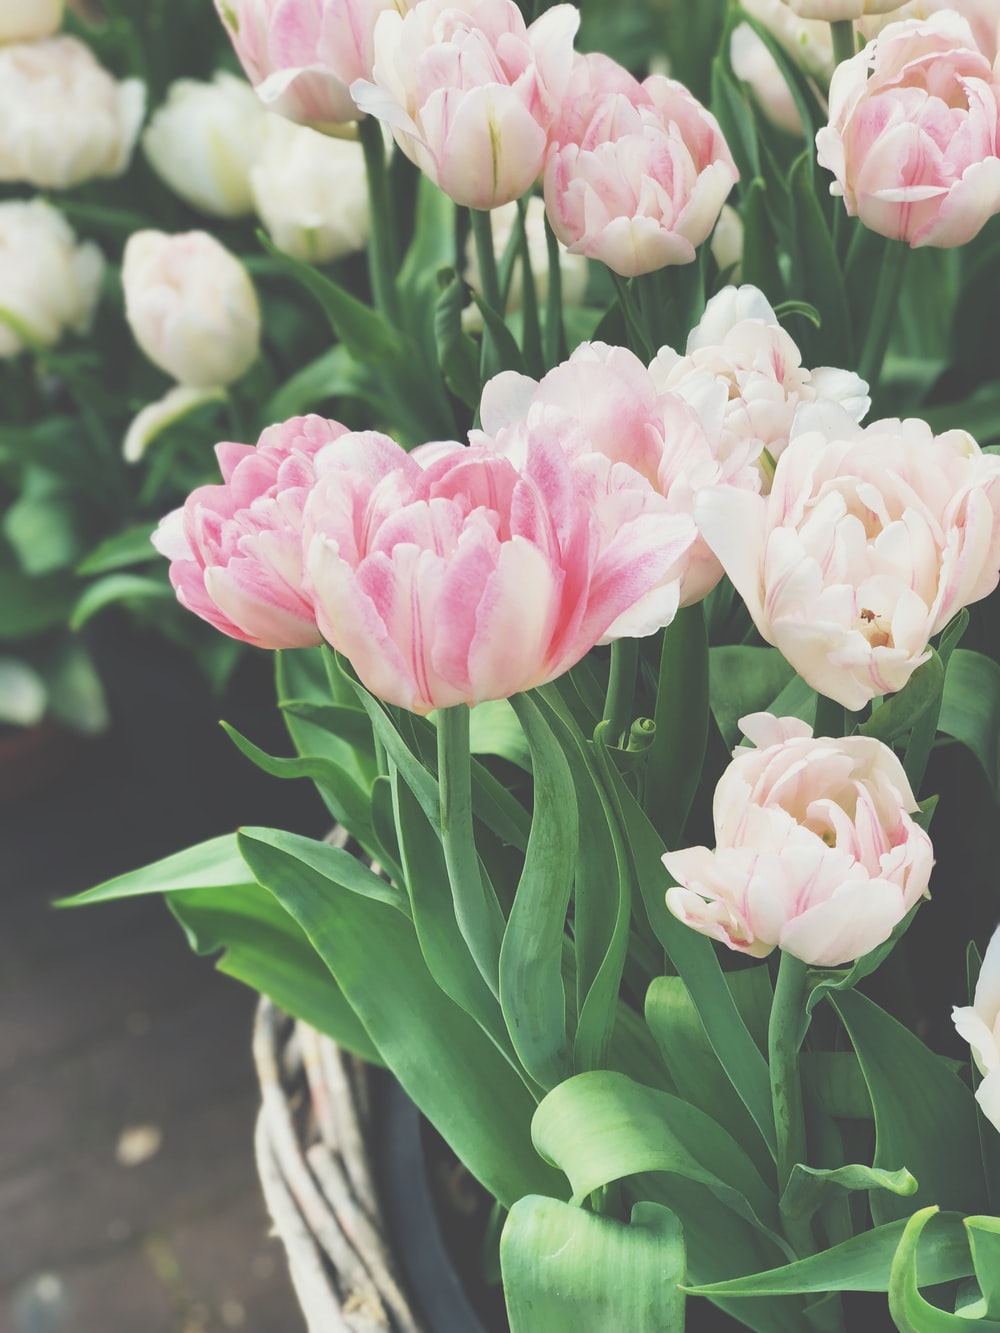 pink and white tulip flowers